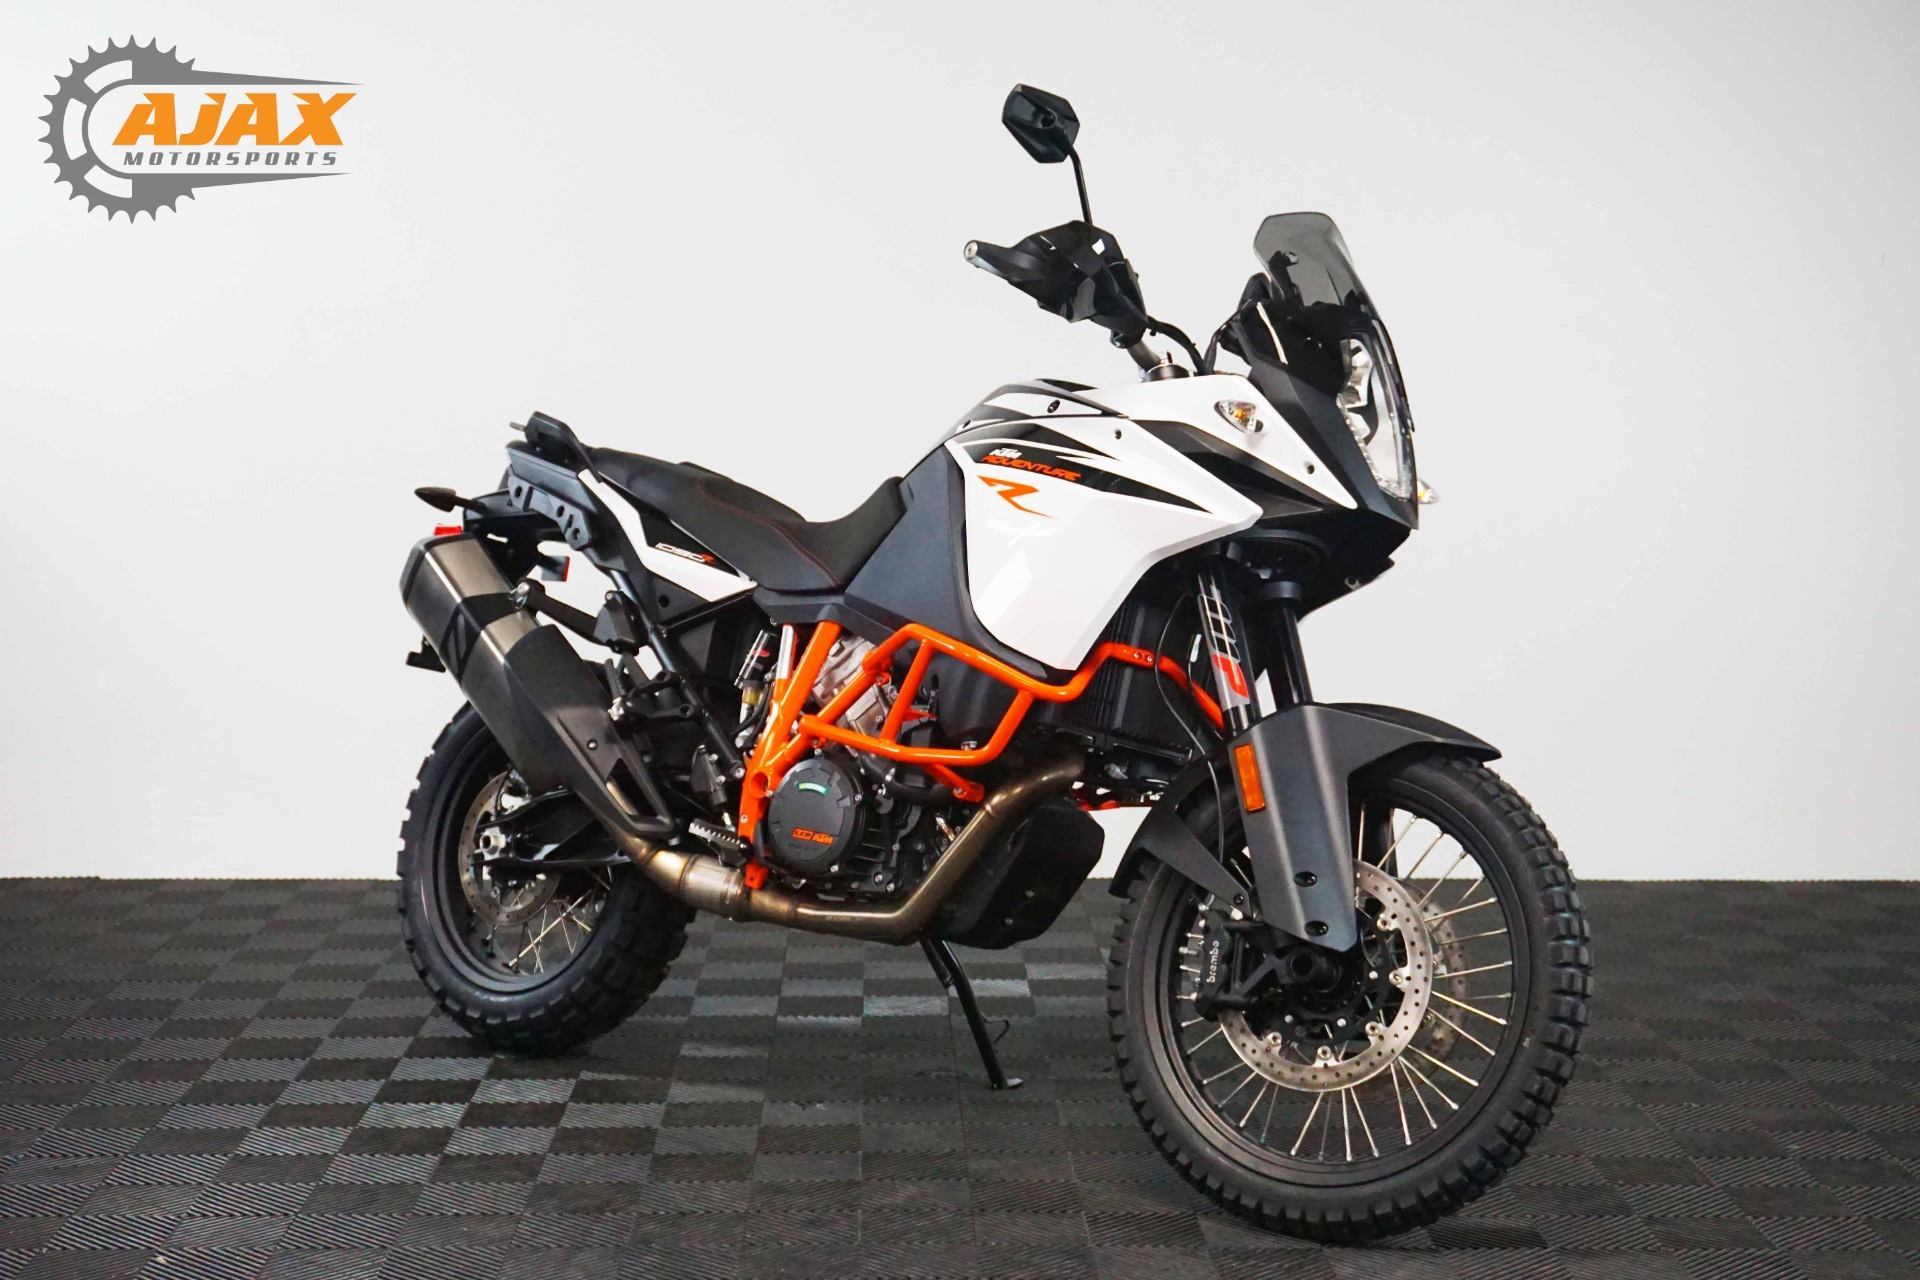 2017 ktm 1090 adventure r for sale oklahoma city ok 83017. Black Bedroom Furniture Sets. Home Design Ideas